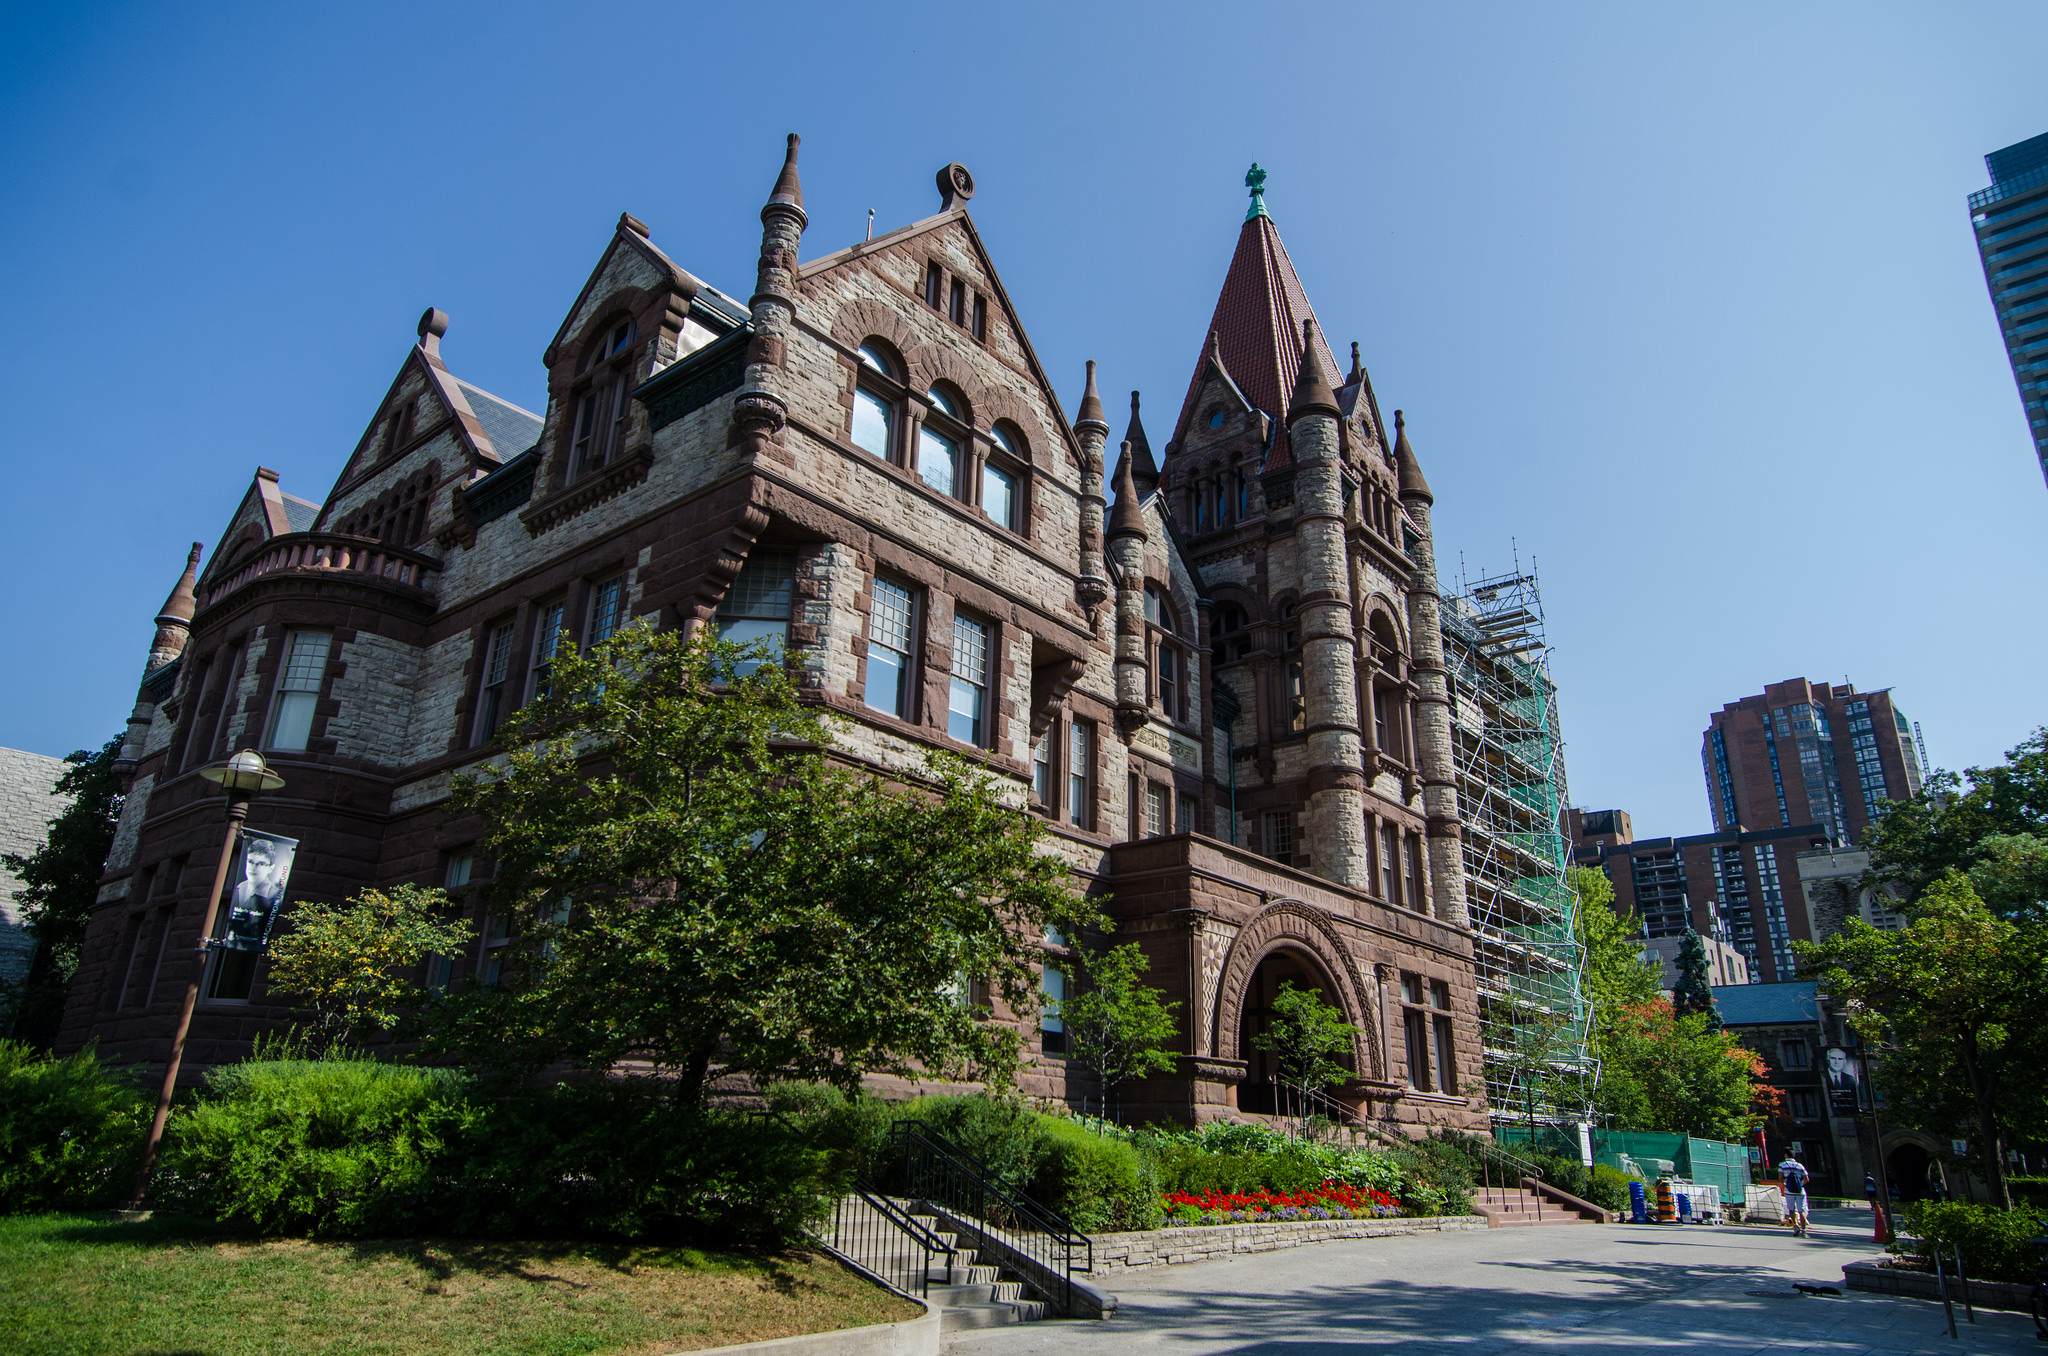 The Old Vic building at the University of Toronto's Victoria College is one of the featured buildings in Doors Open Toronto   © Jeff Hitchcock/ Flickr